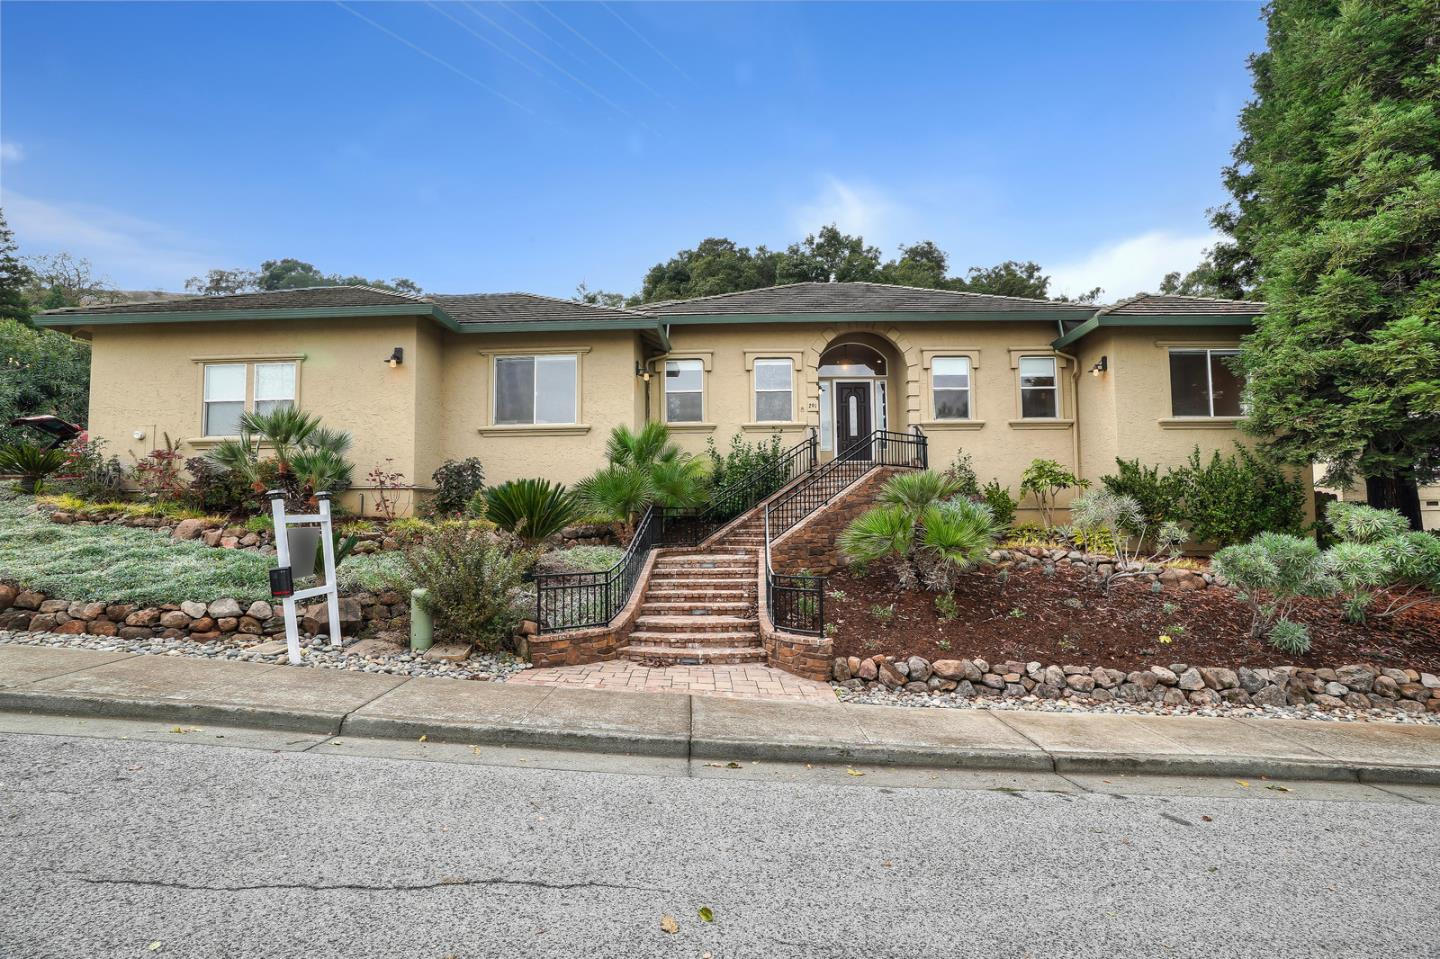 291 Oak Grove CT, Morgan Hill in Santa Clara County, CA 95037 Home for Sale